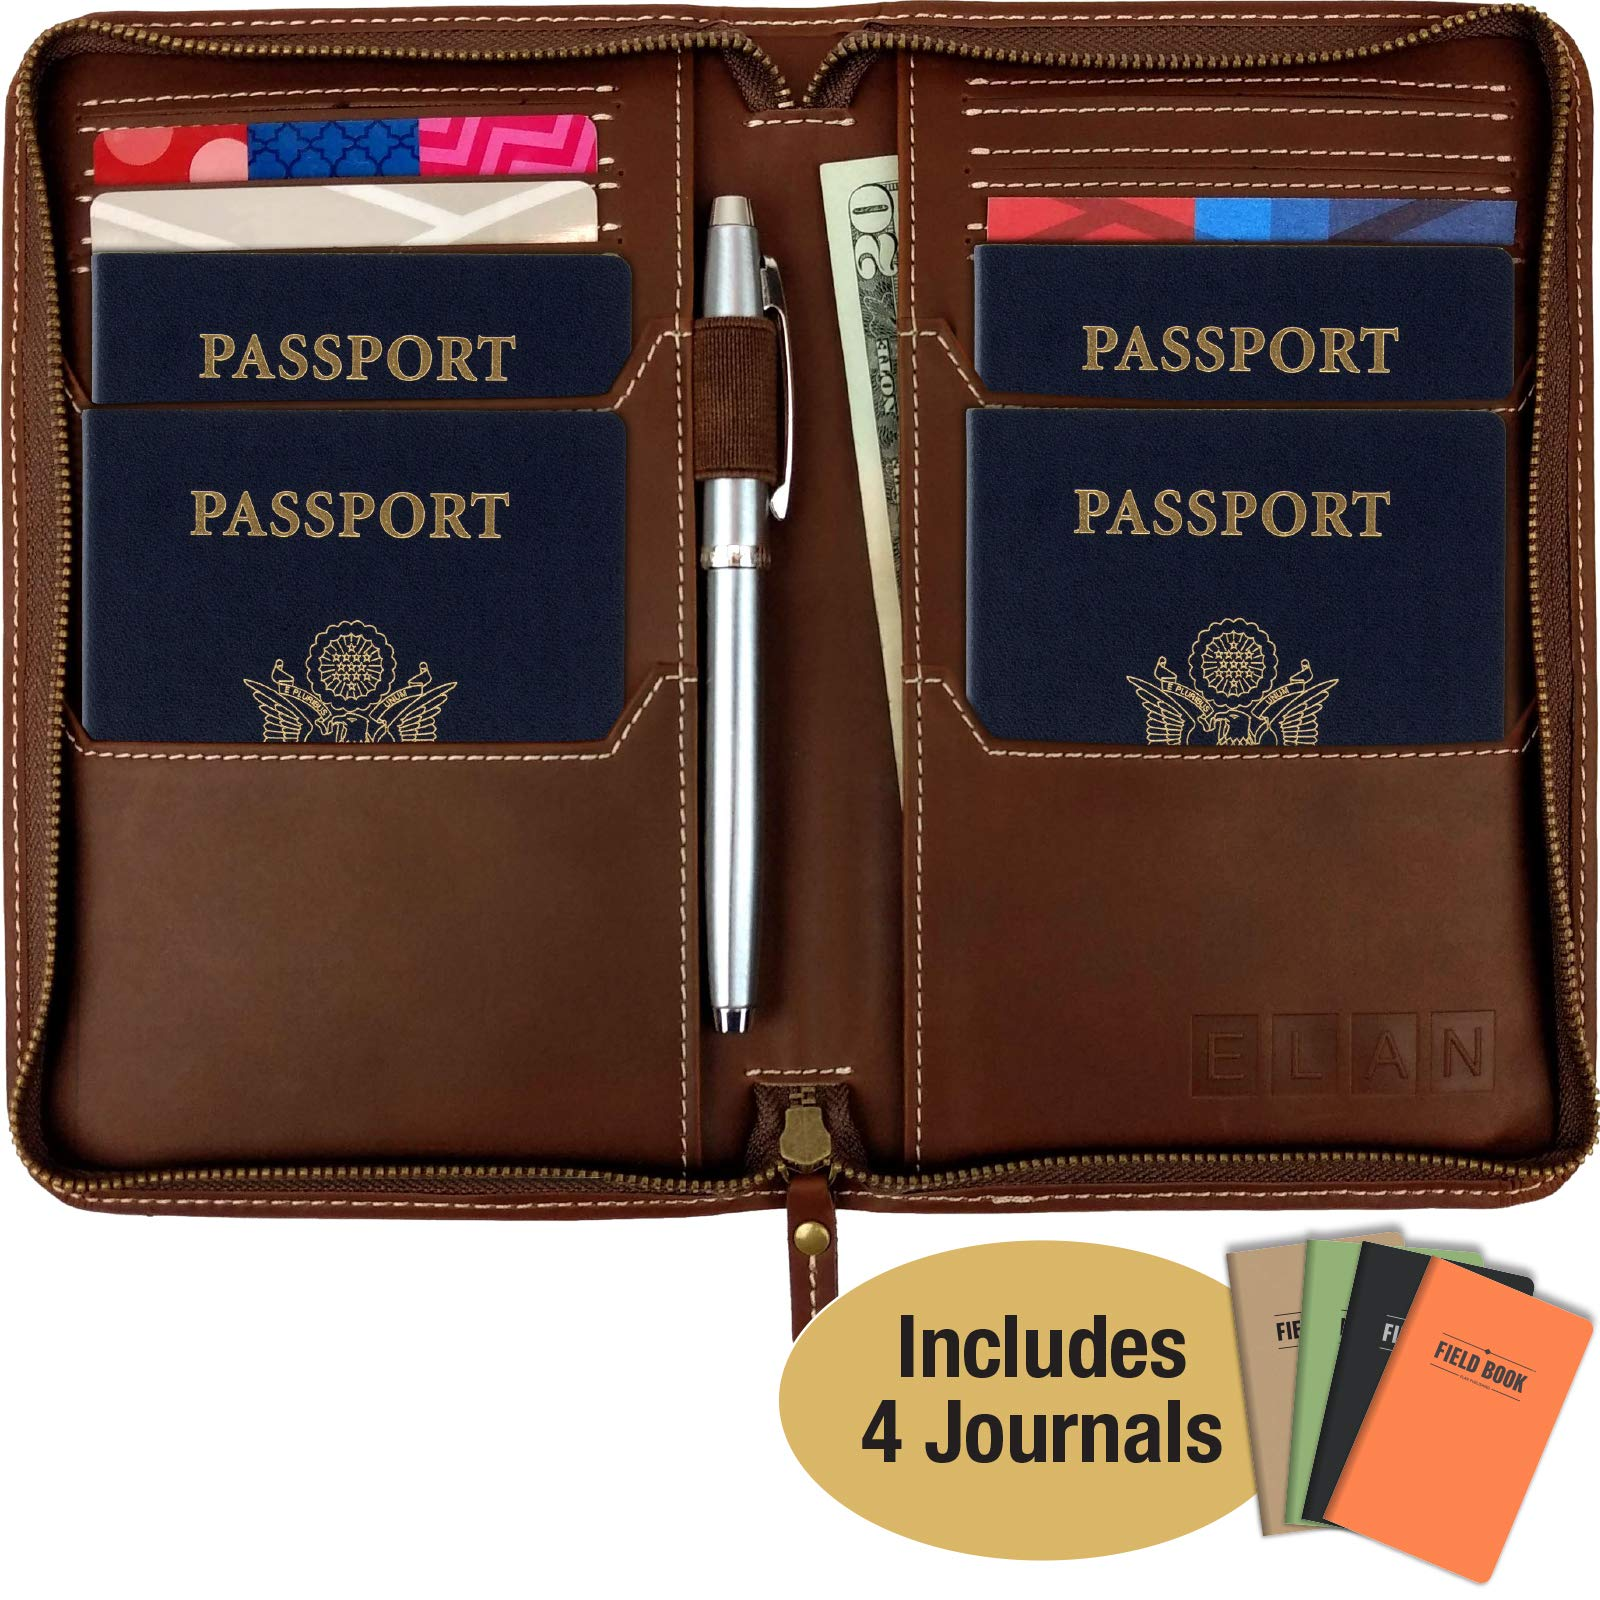 Leather Travel Wallet & Passport Holder: Passport Cover holds 4 Passports, Credit Cards, ID, Travel Journals and Document Holder. BONUS: Includes a set of 4 Travel Journals / Notebooks. by Excello Global Products